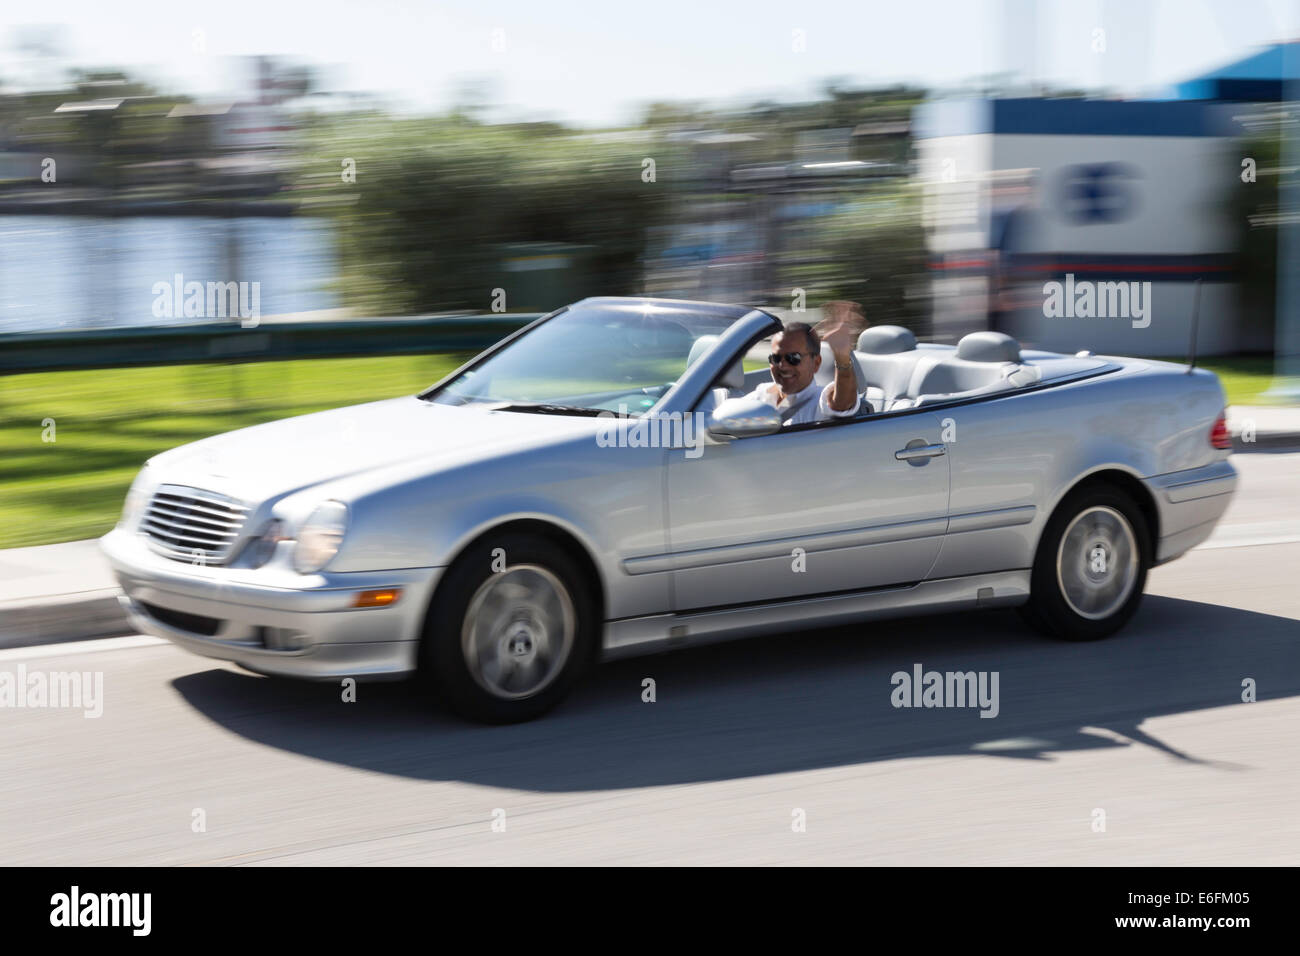 Caucasian Man Driving Luxury Convertible Car, Ft Lauderdale, FL, USA - Stock Image